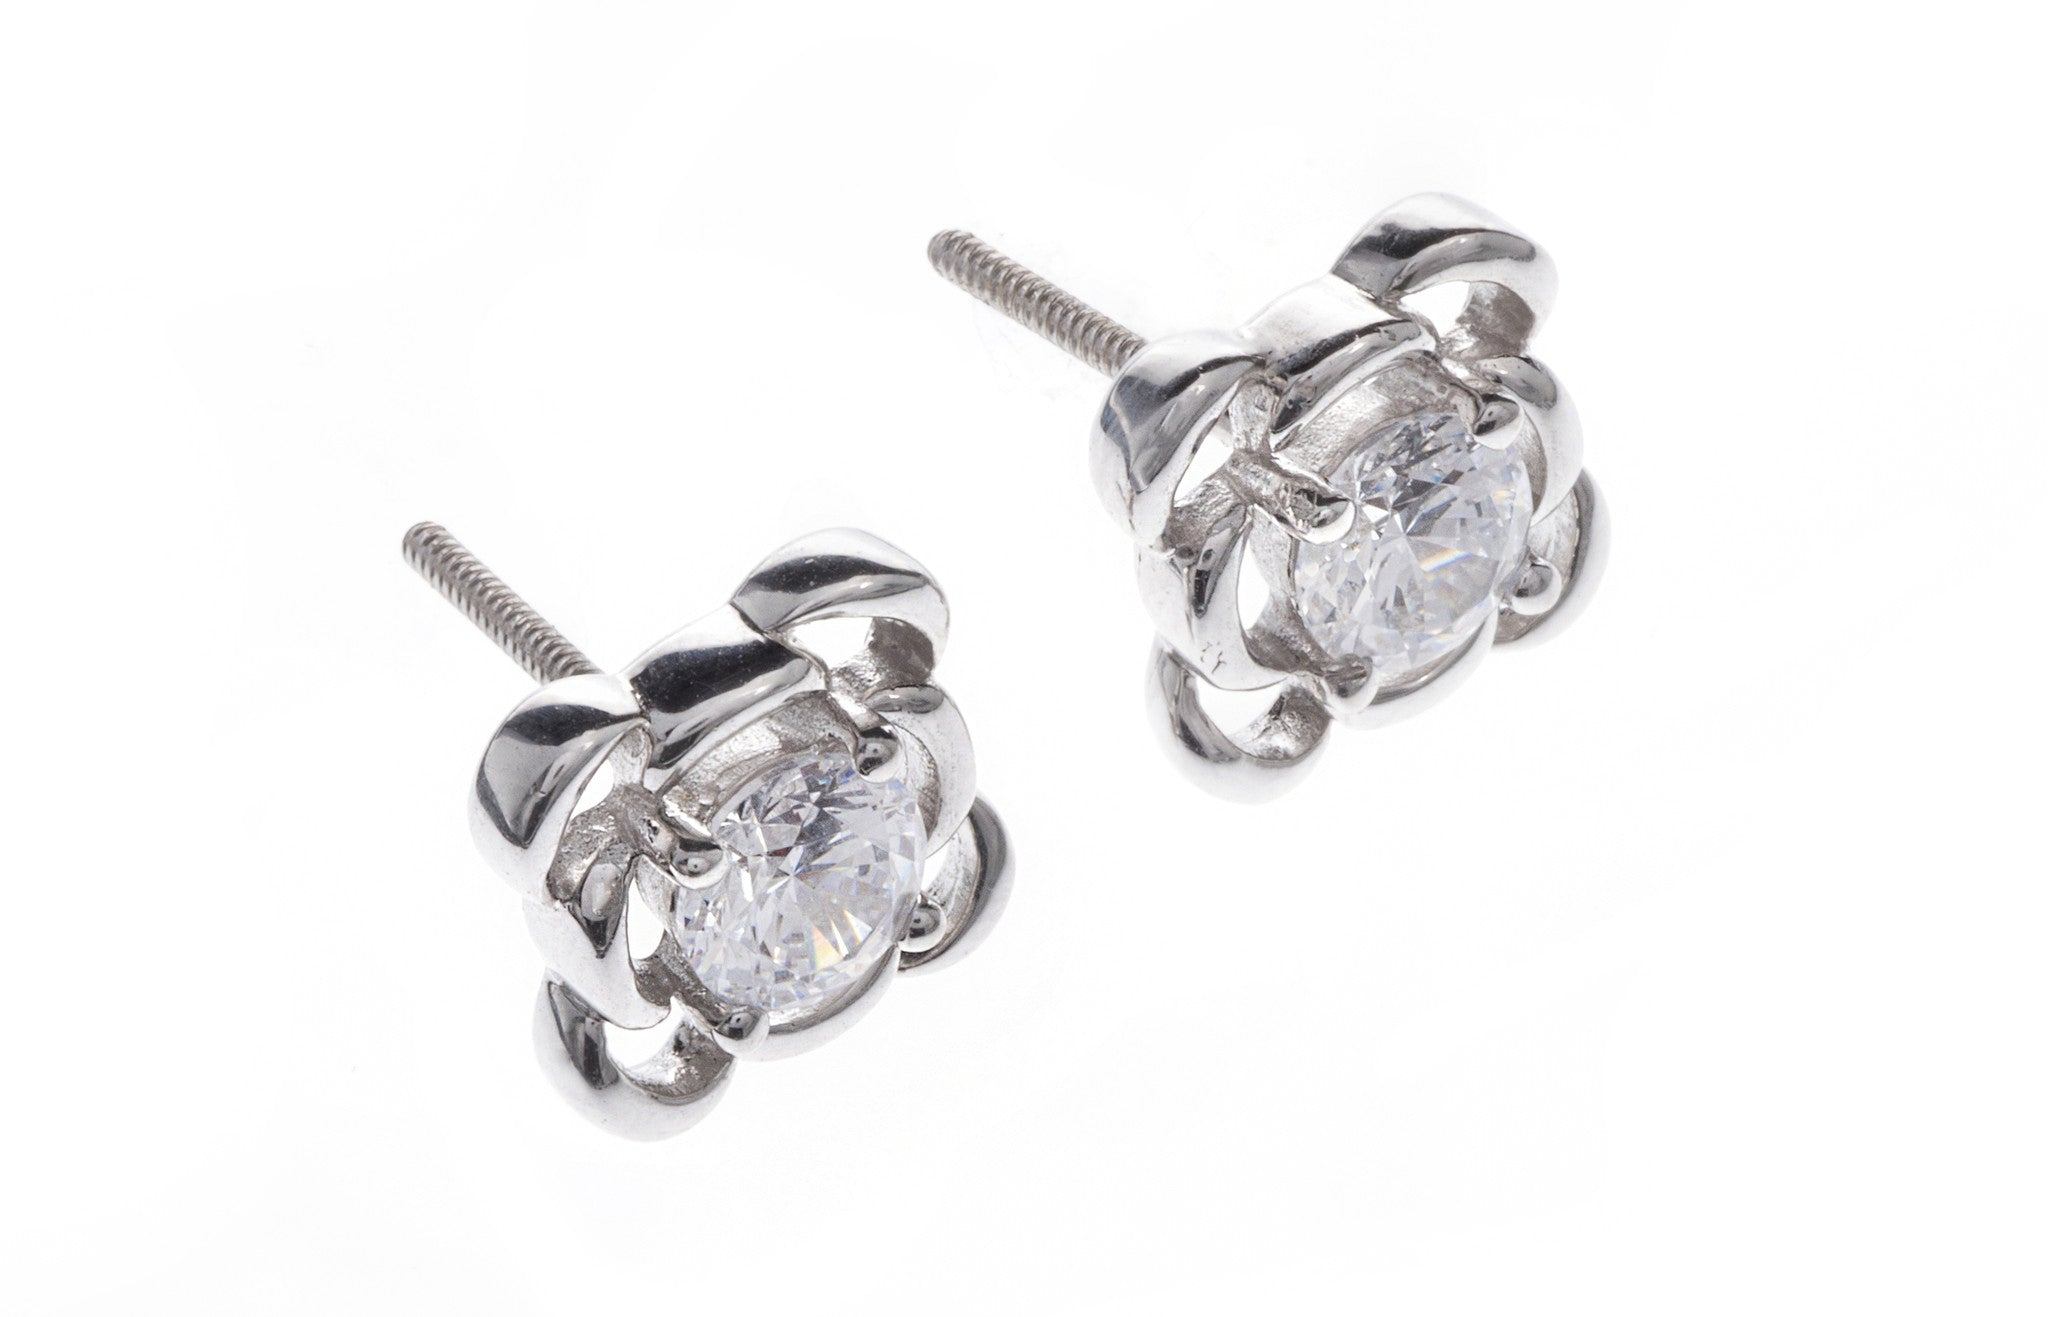 18ct White Gold Earrings set with Cubic Zirconia stones, Minar Jewellers - 1